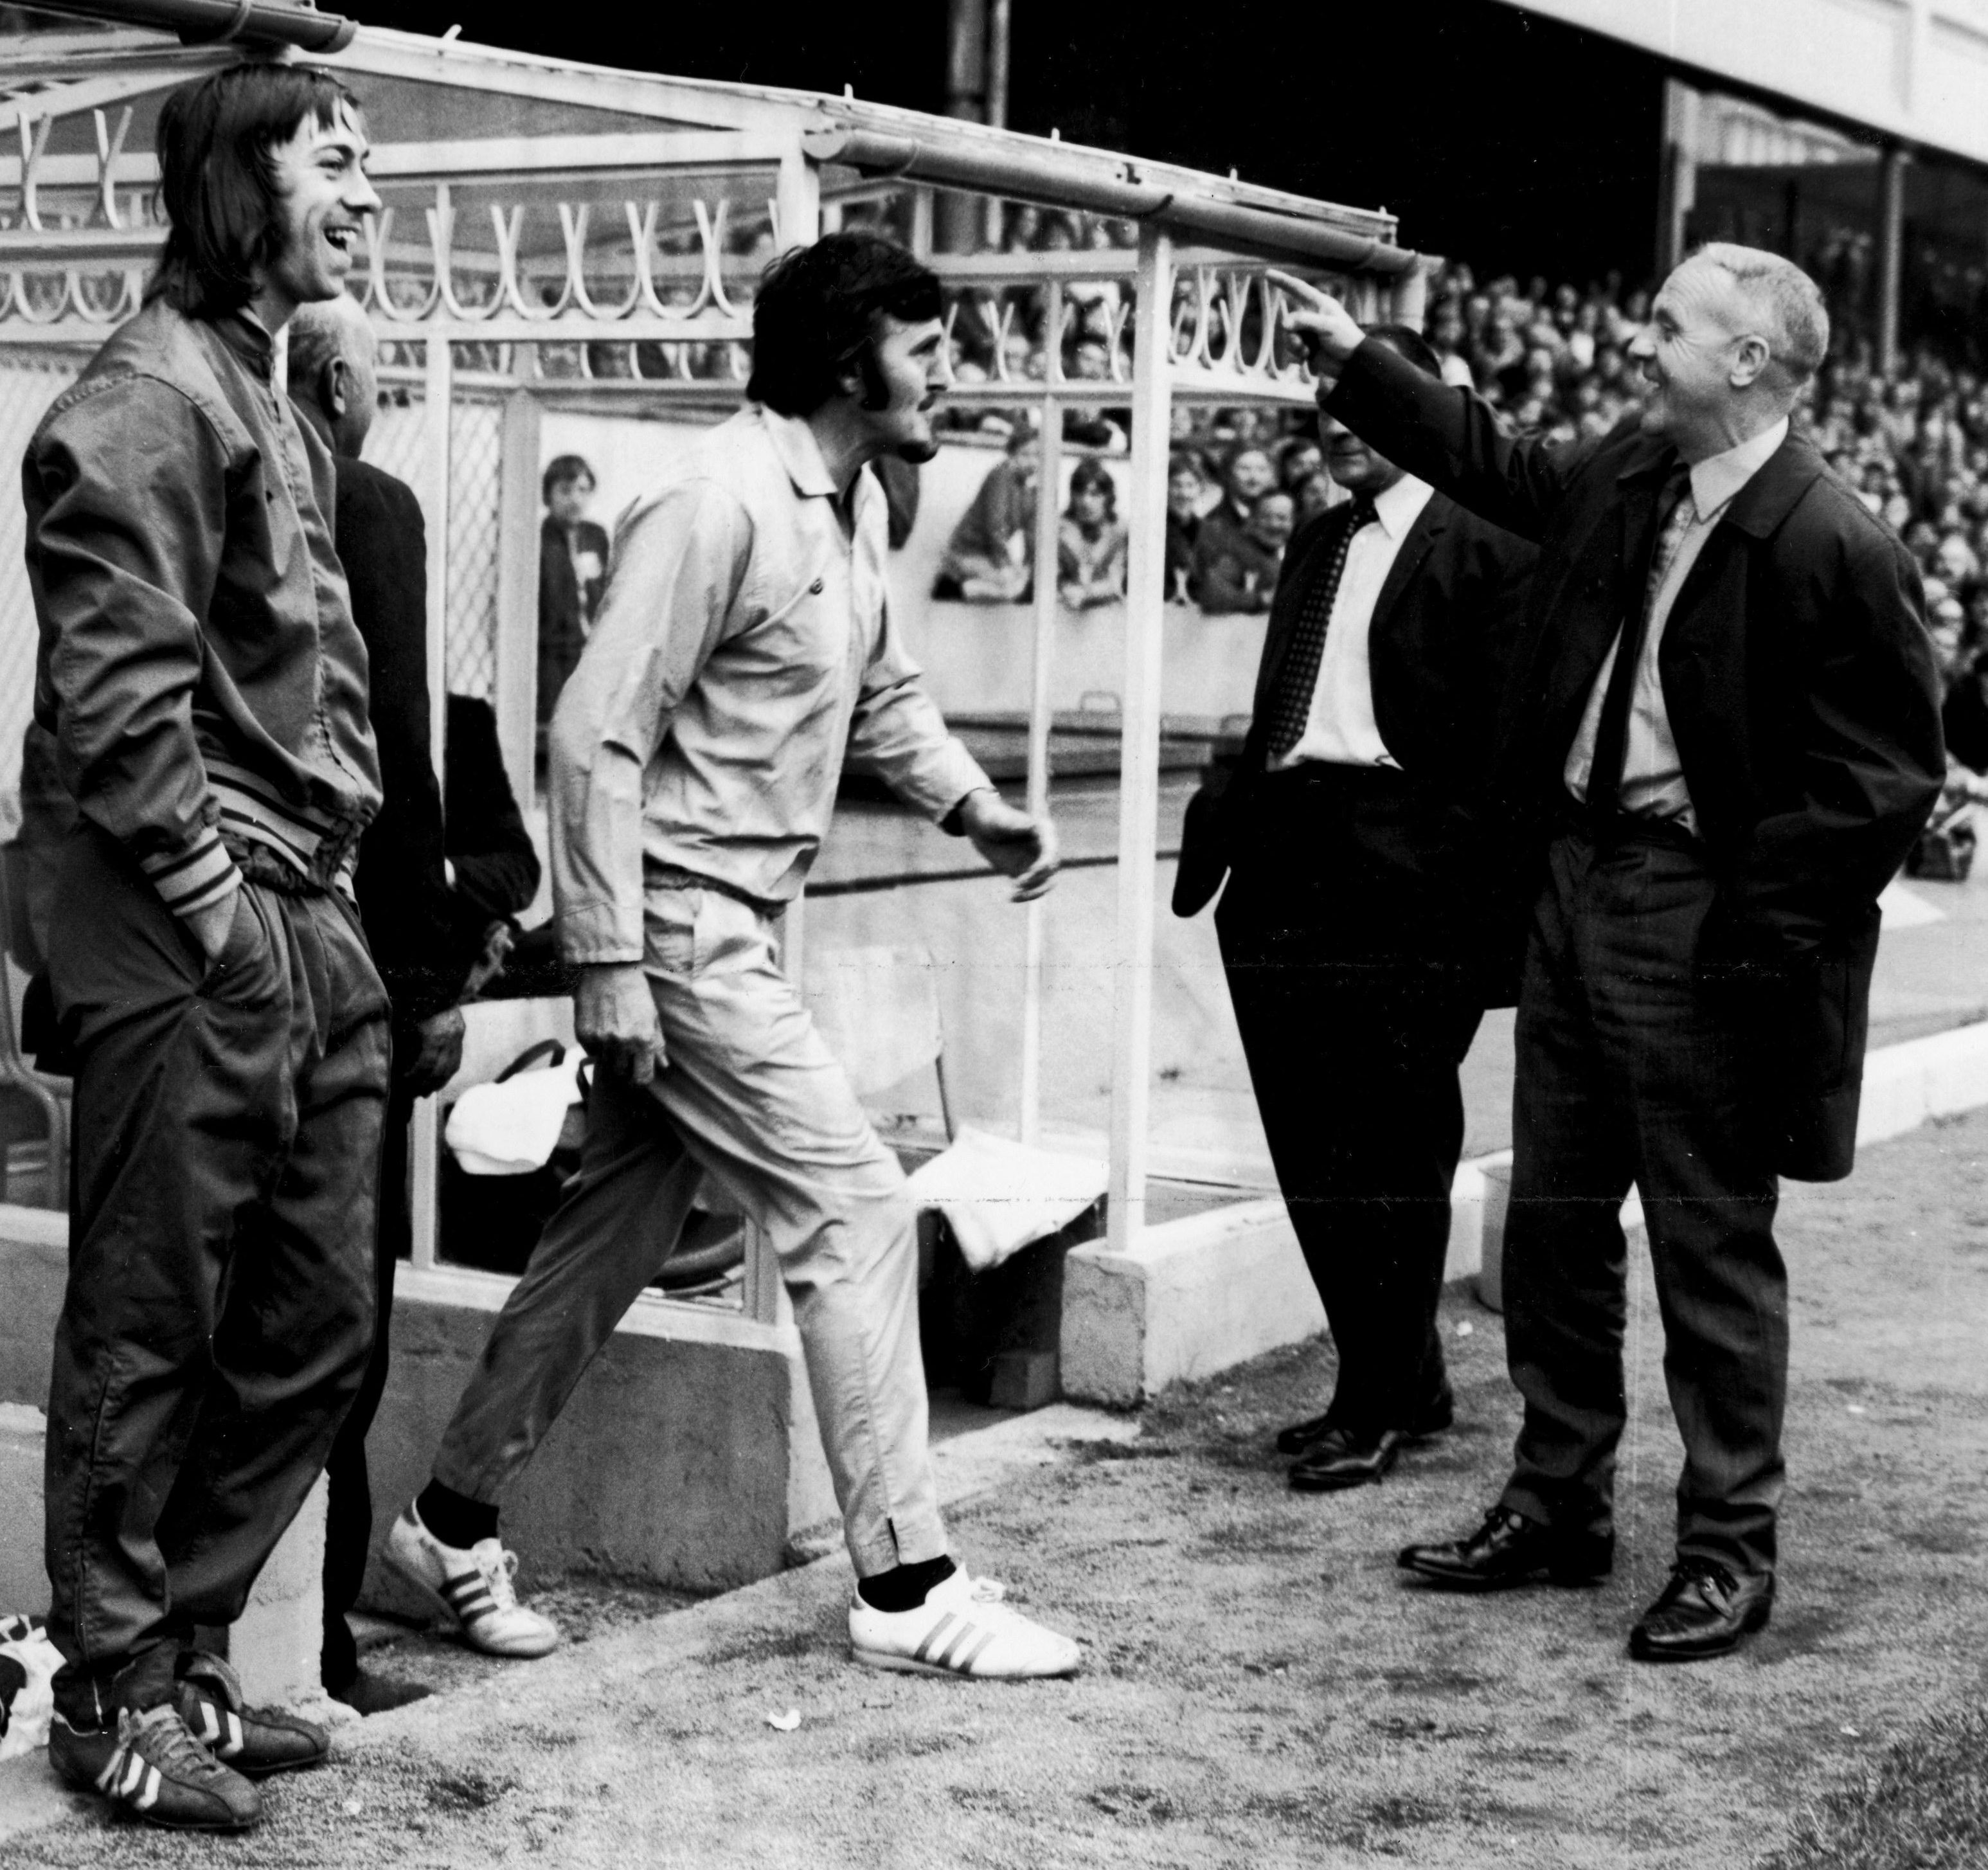 Arsenal's Charlie George Shankly share a laugh as commentator Jimmy Hill emerges in a sky blue tracksuit to take over from a linesman who had limped off injured